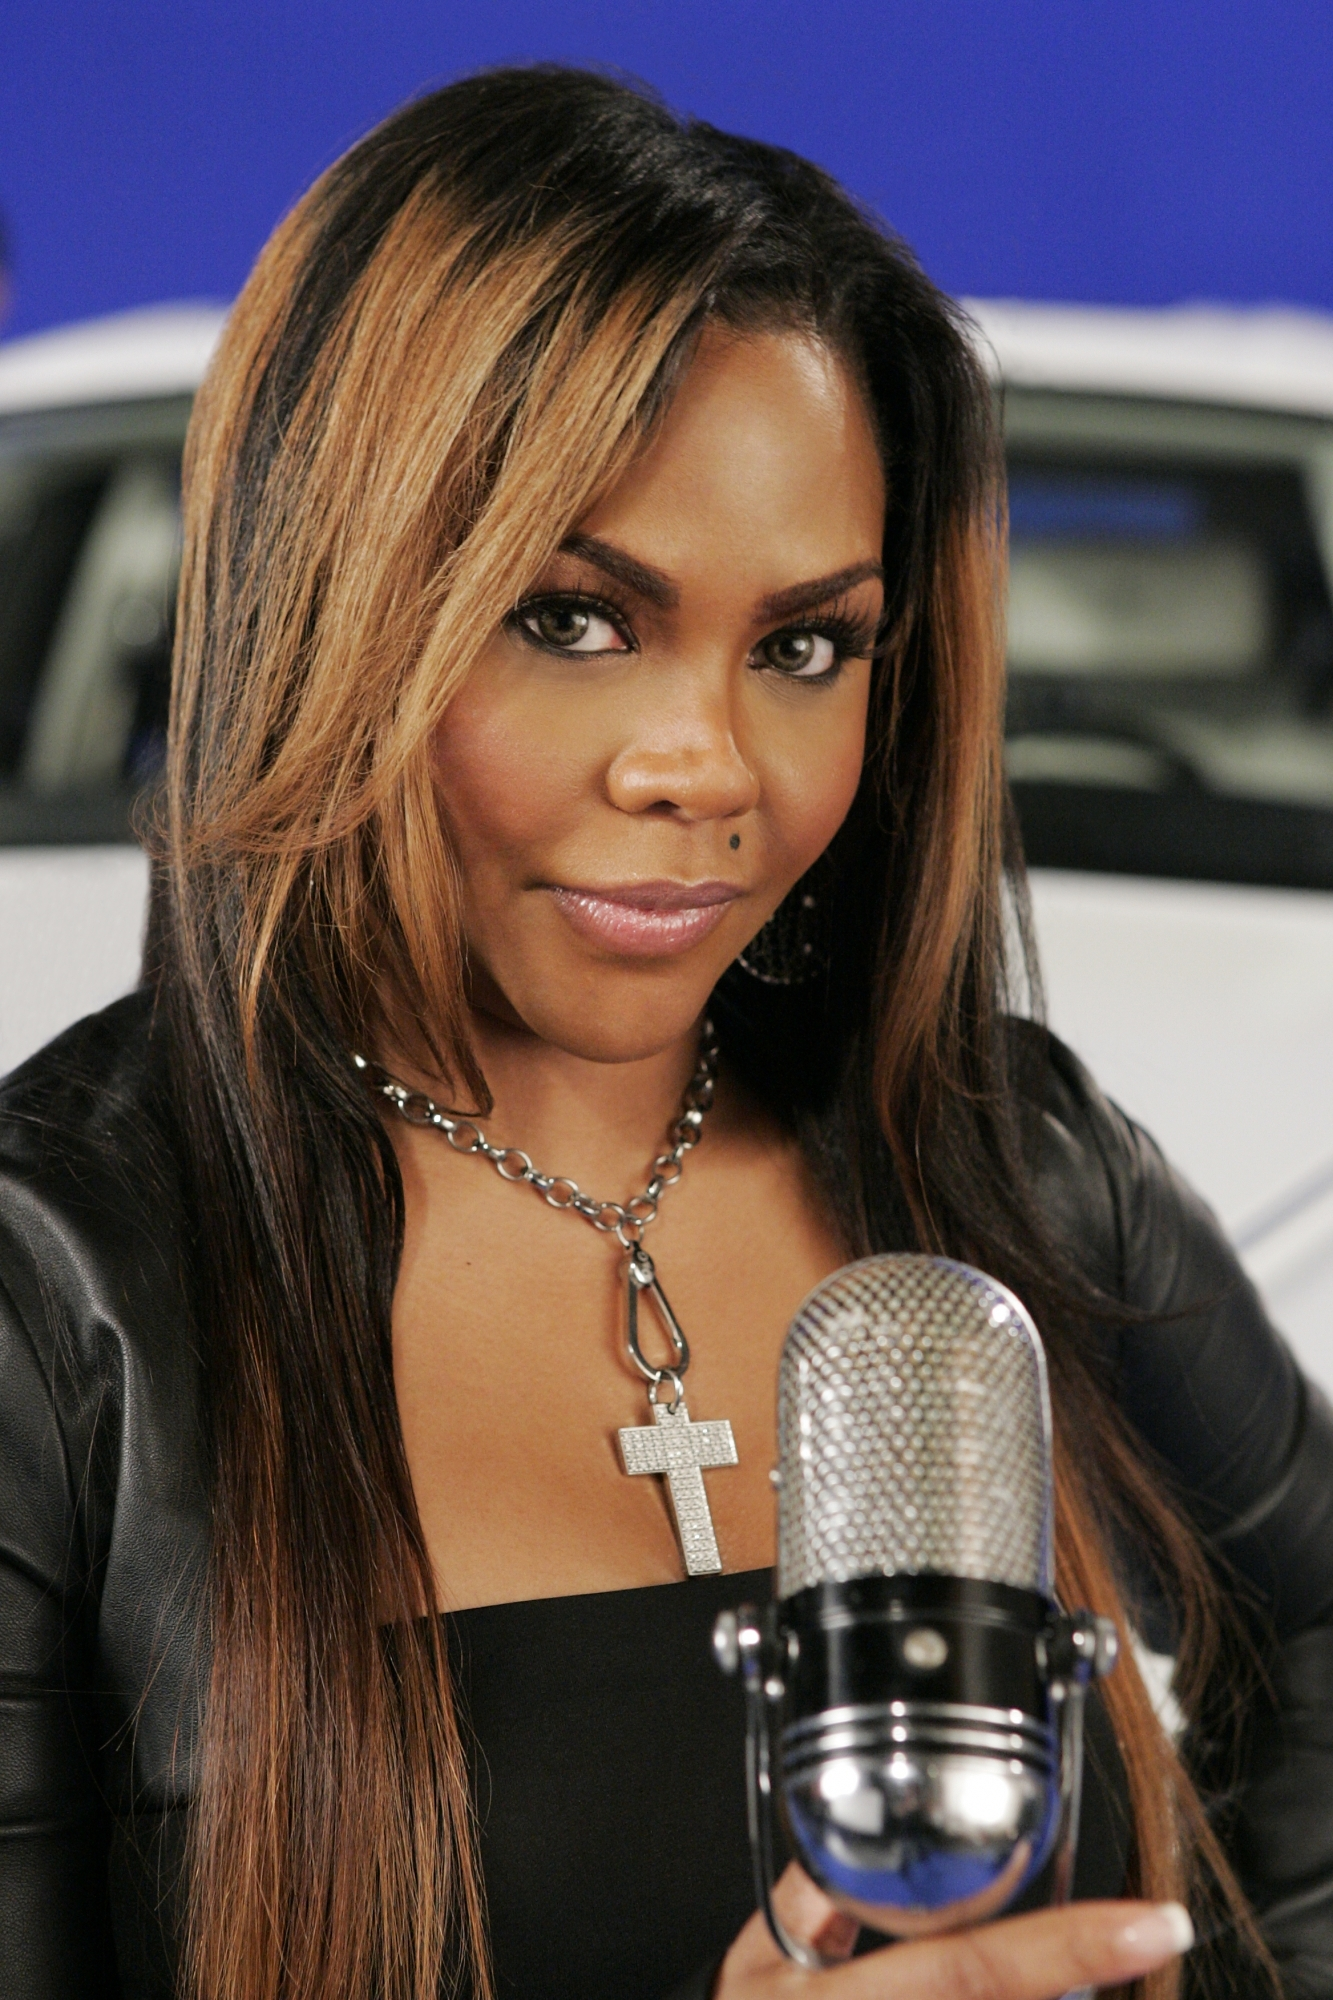 Lil Kim photo gallery - page #2 | Celebs-Place.com